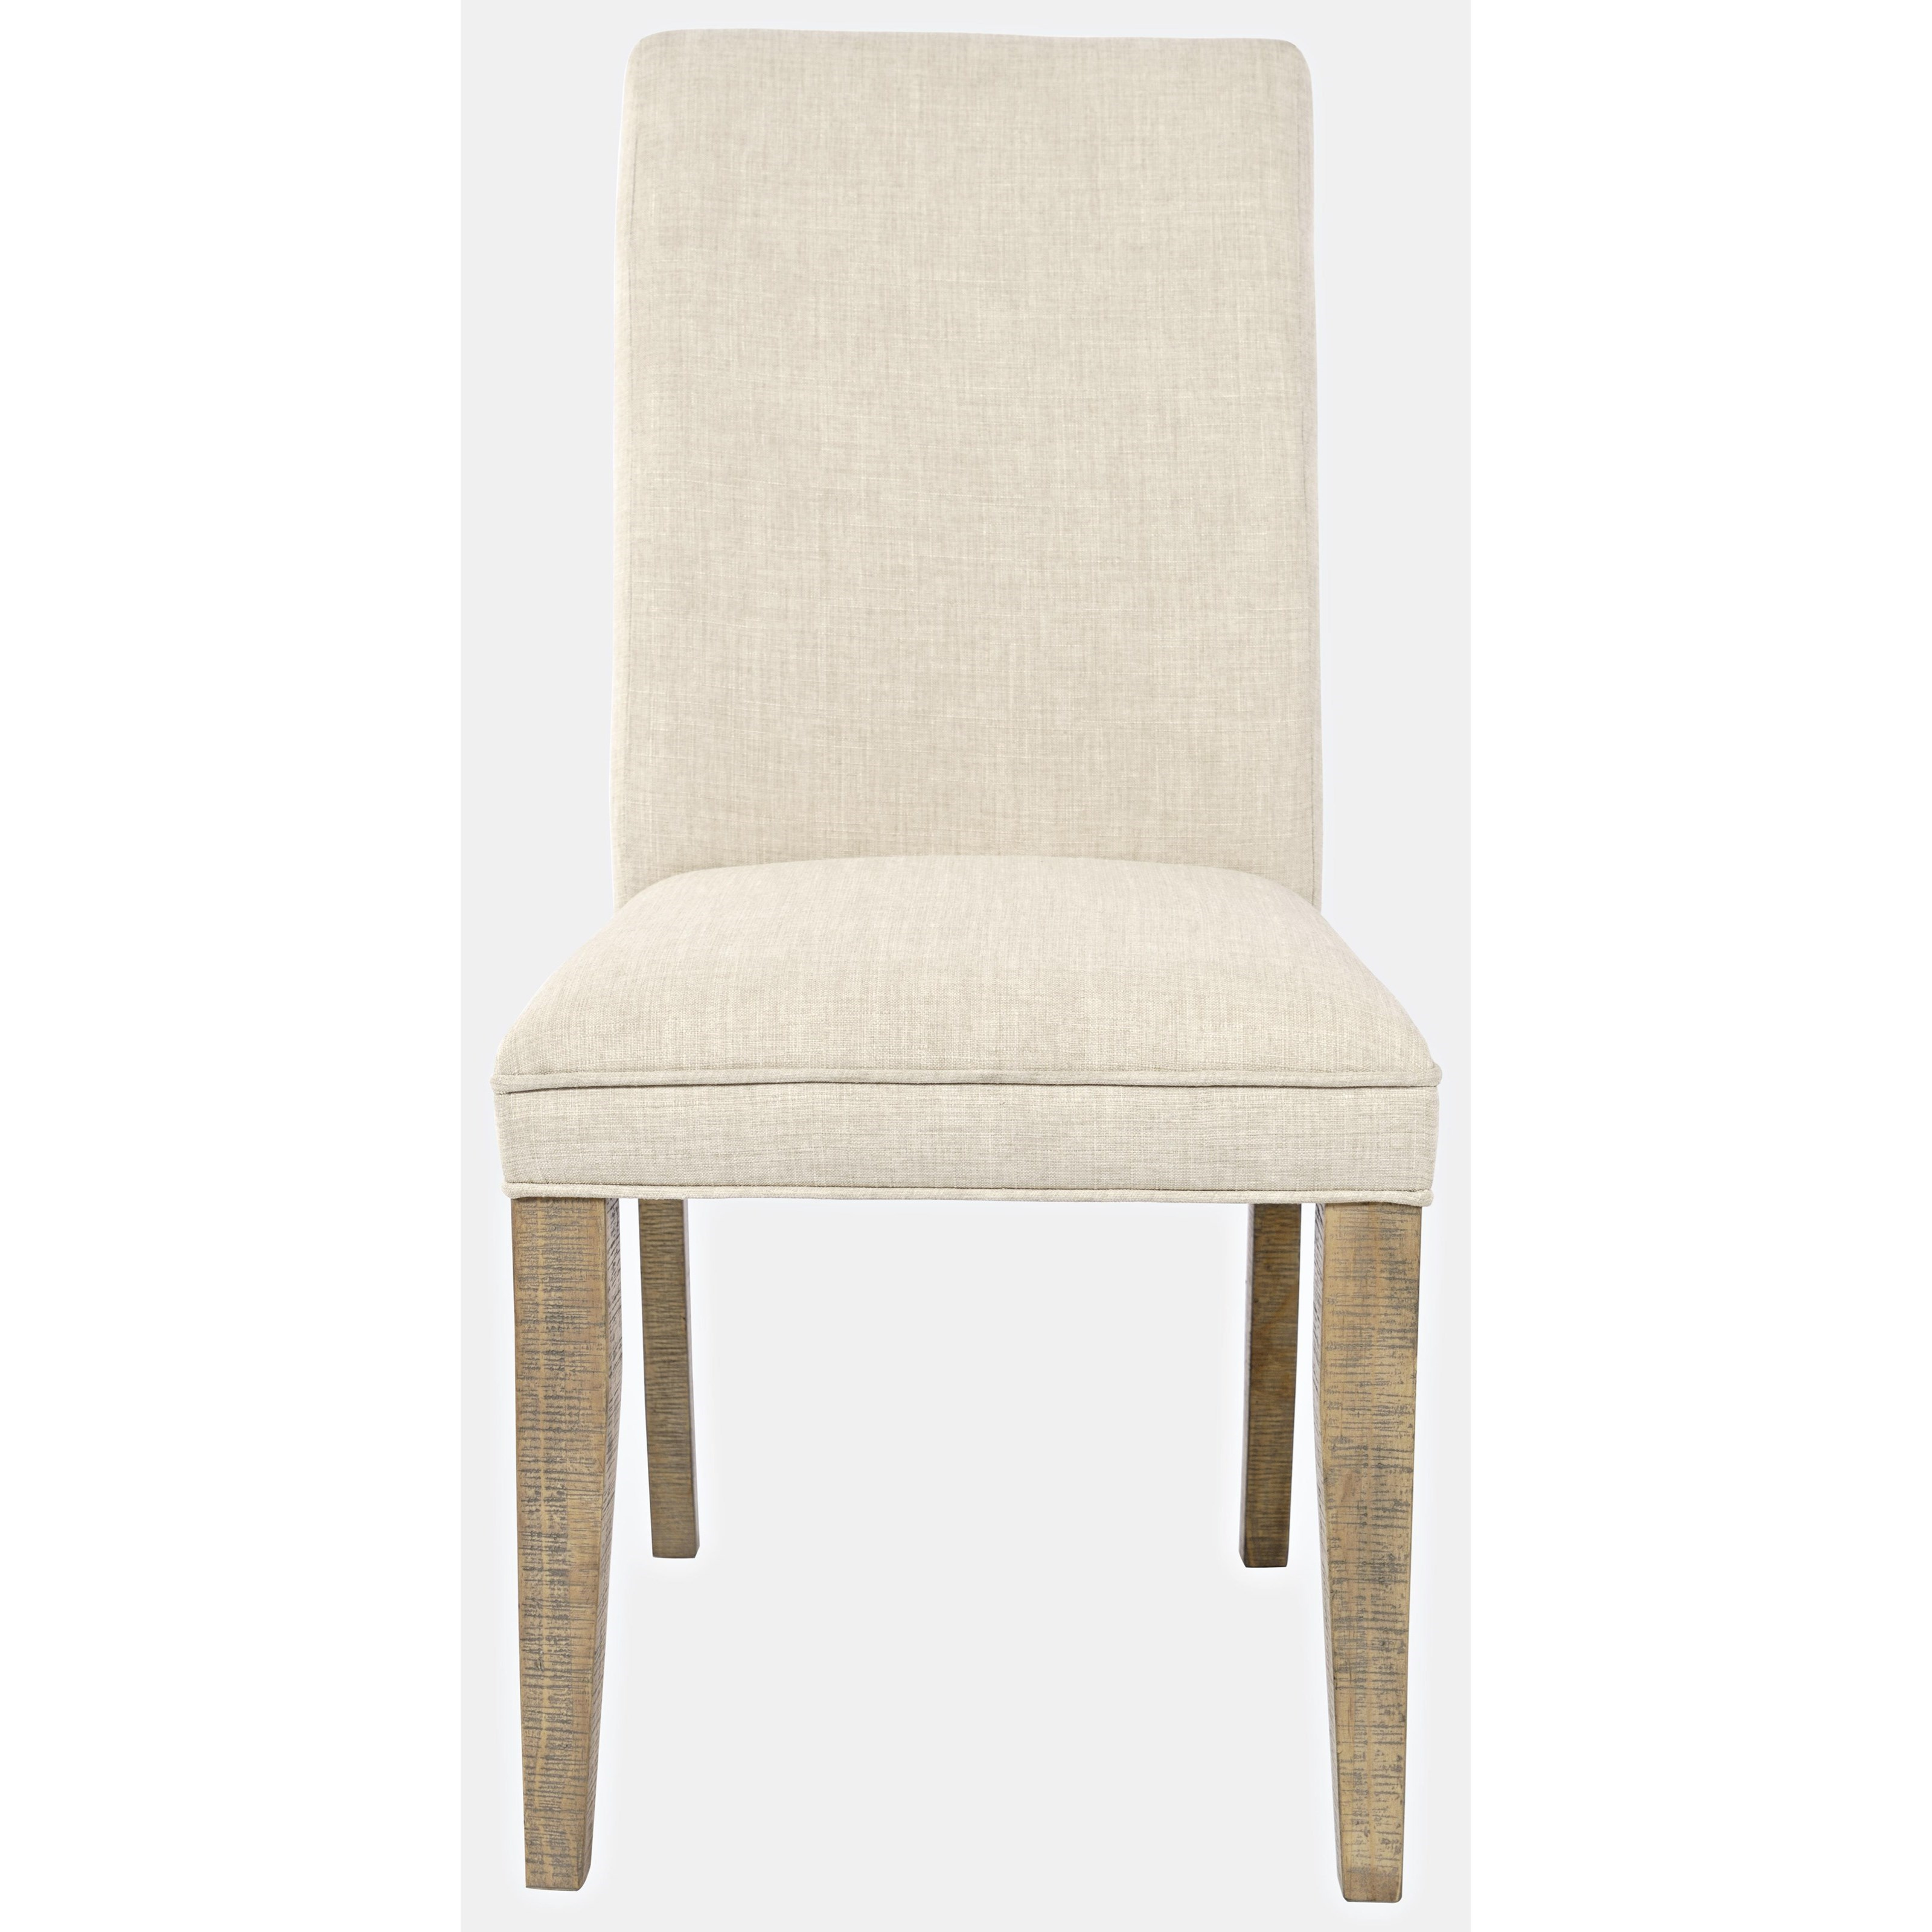 Carlyle Crossing Upholstered Chair by Jofran at Darvin Furniture